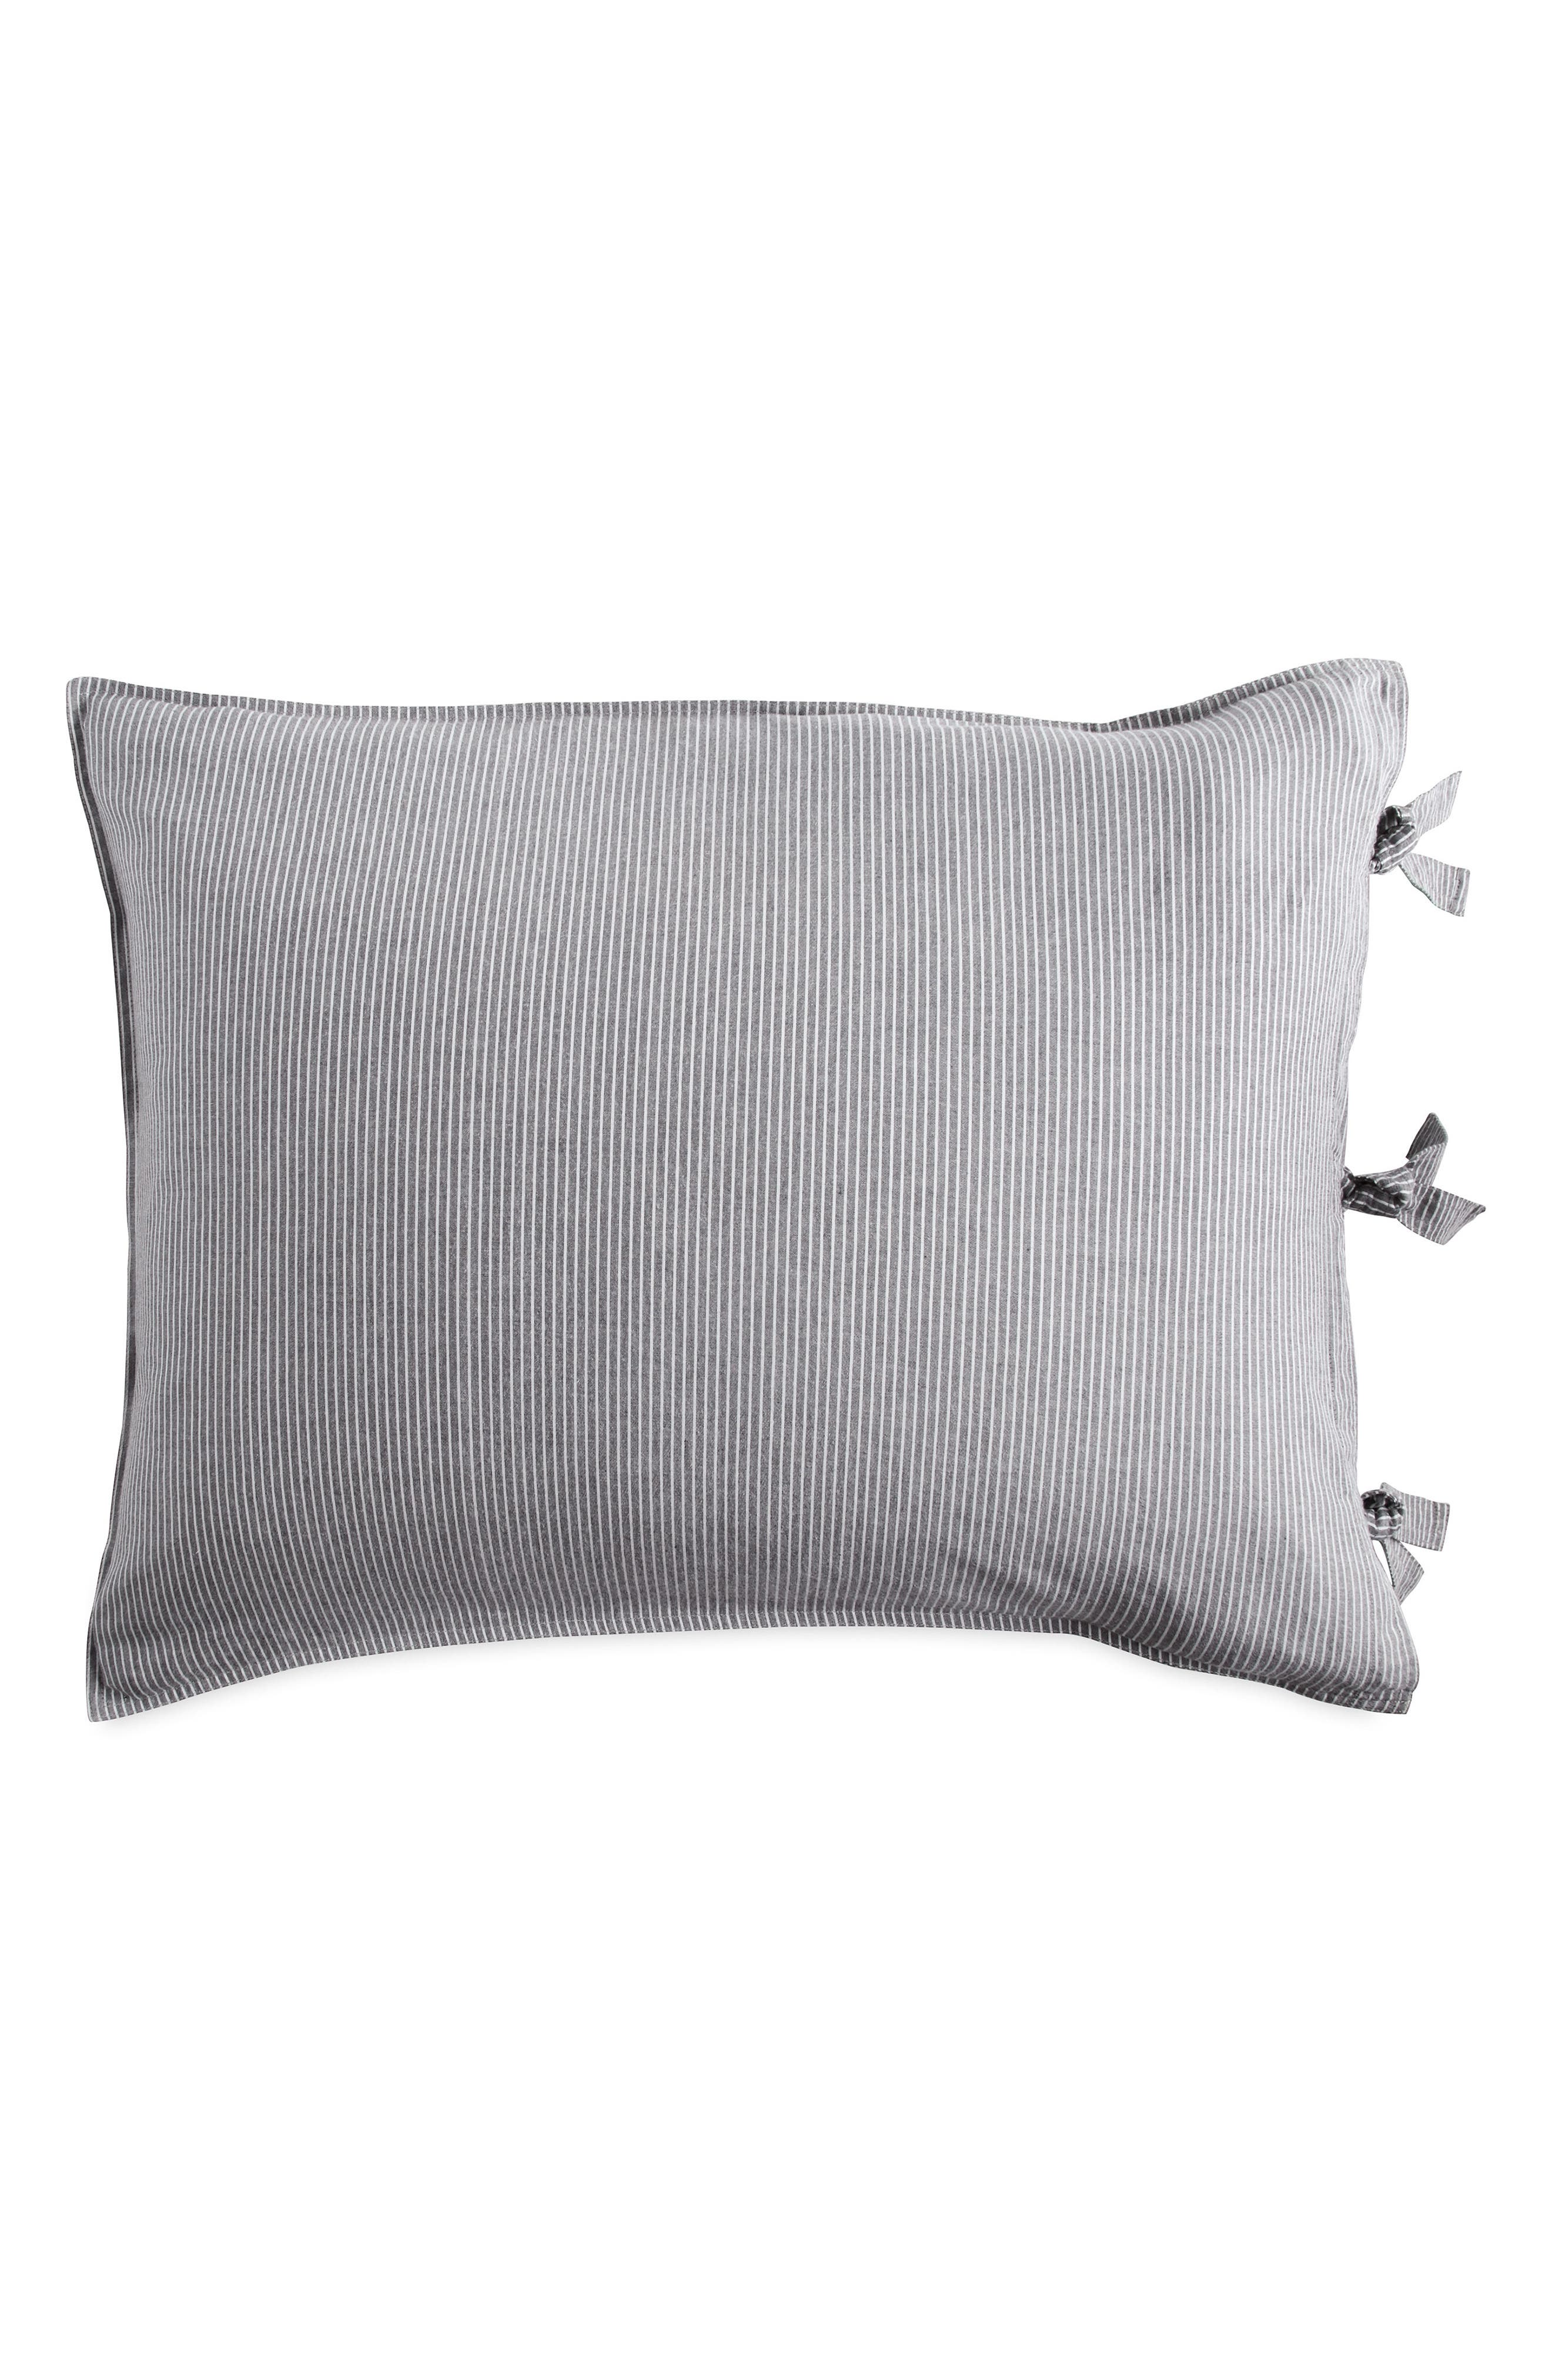 PURE Stripe Pillow Sham,                         Main,                         color, GREY